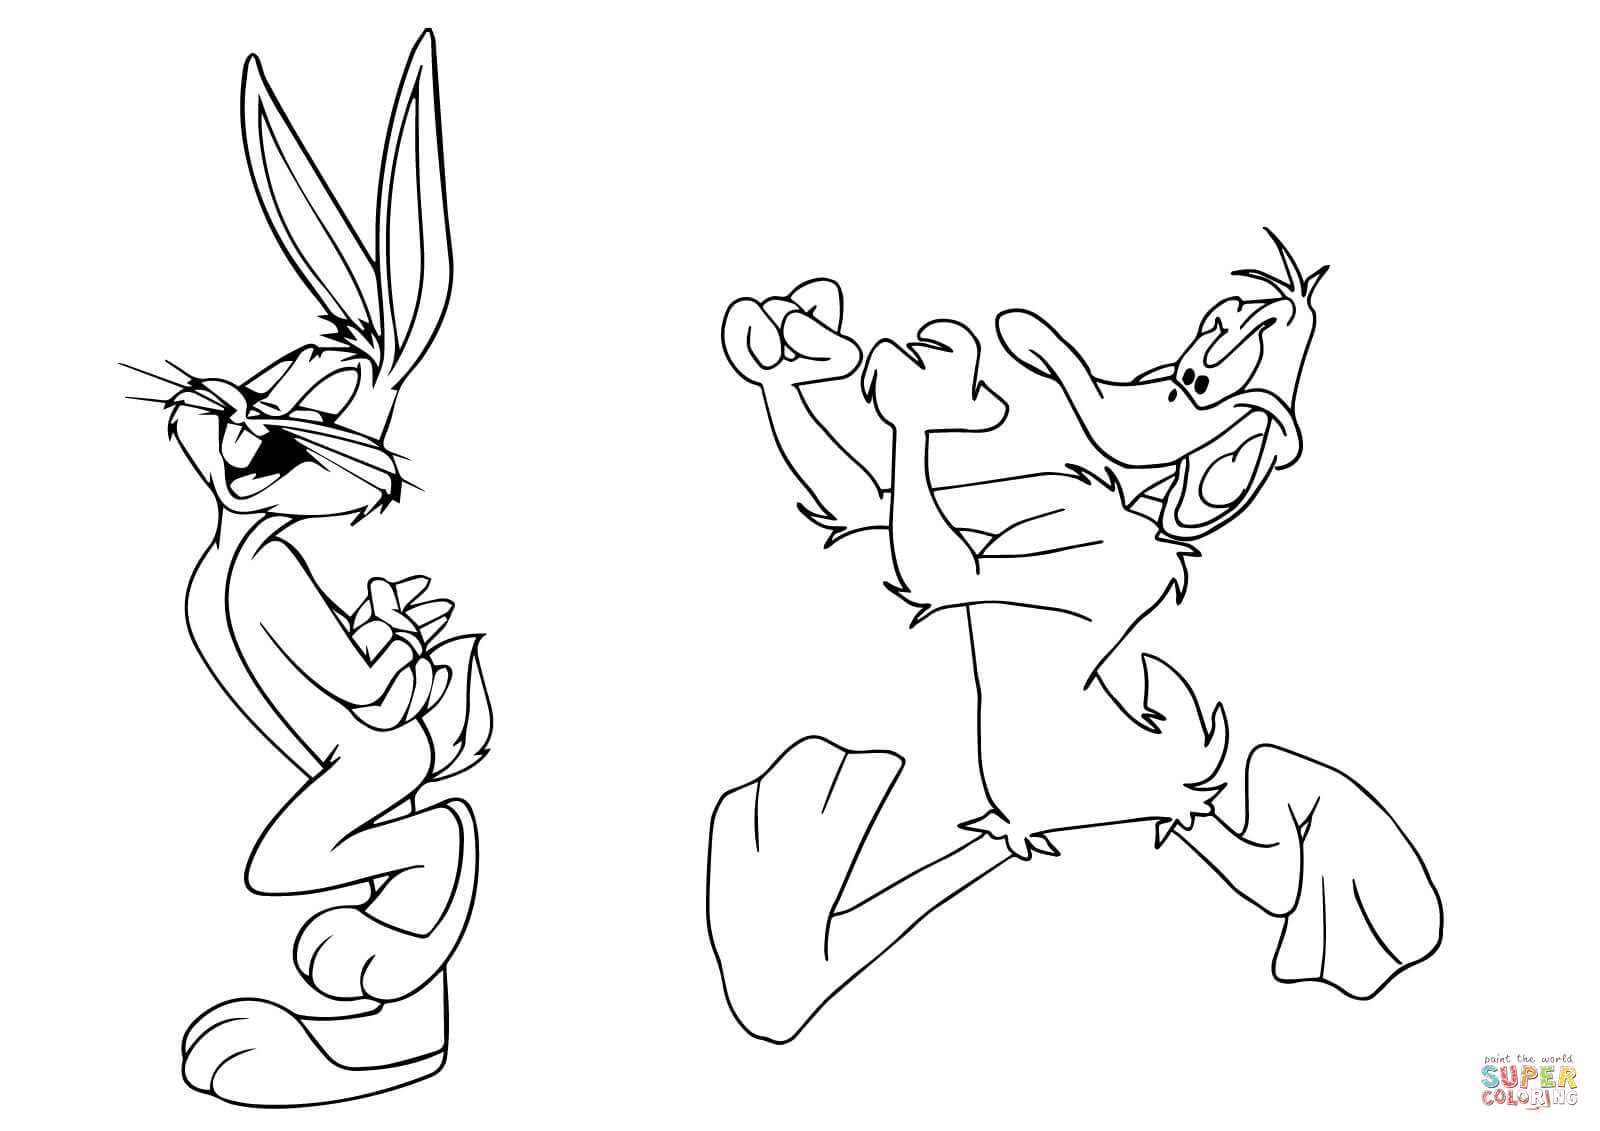 Daffy Duck Chasing Bugs Bunny Coloring Page